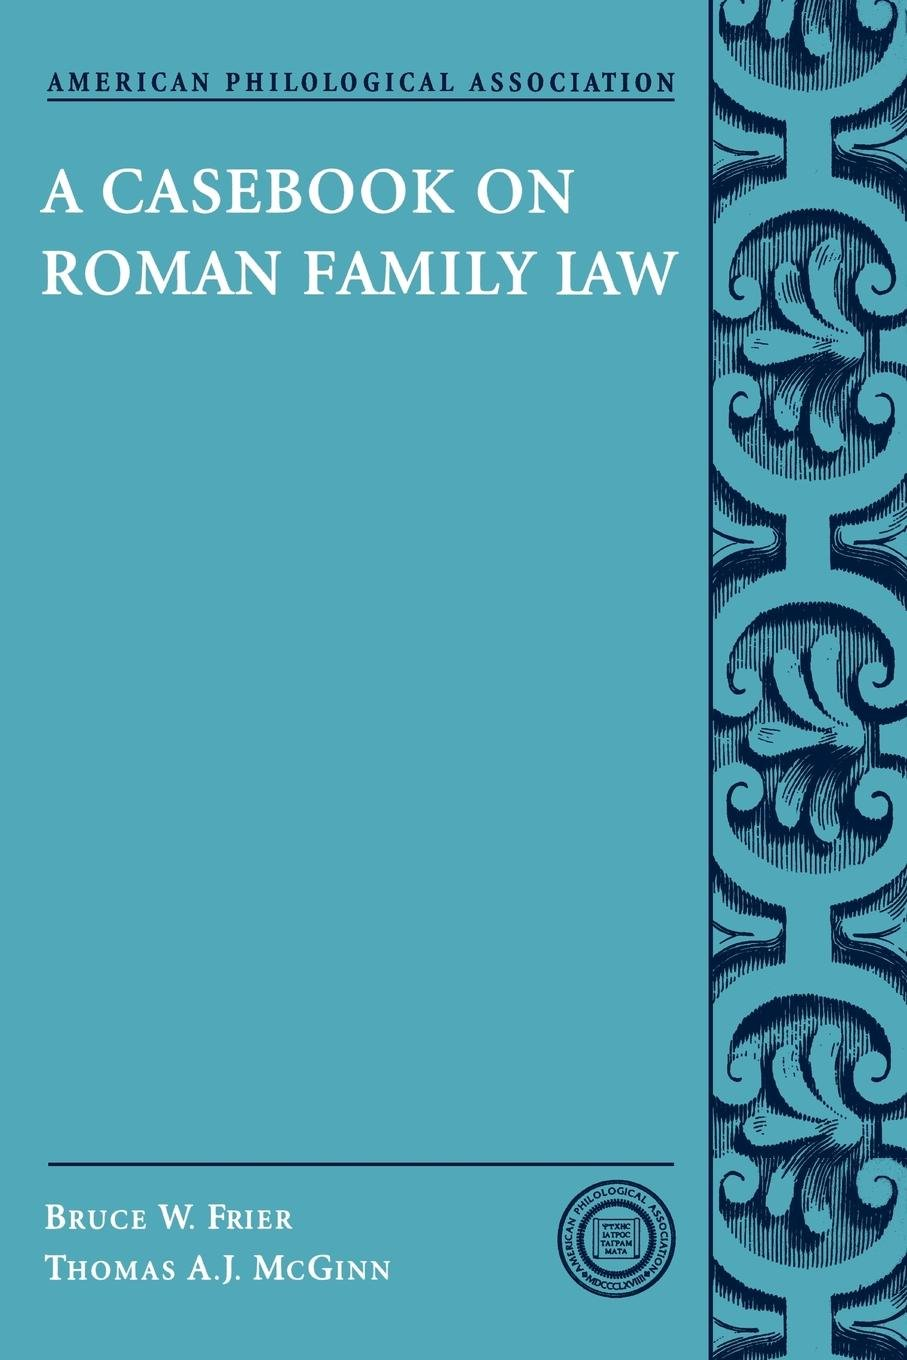 A Casebook on Roman Family Law (Society for Classical Studies Classical Resources)